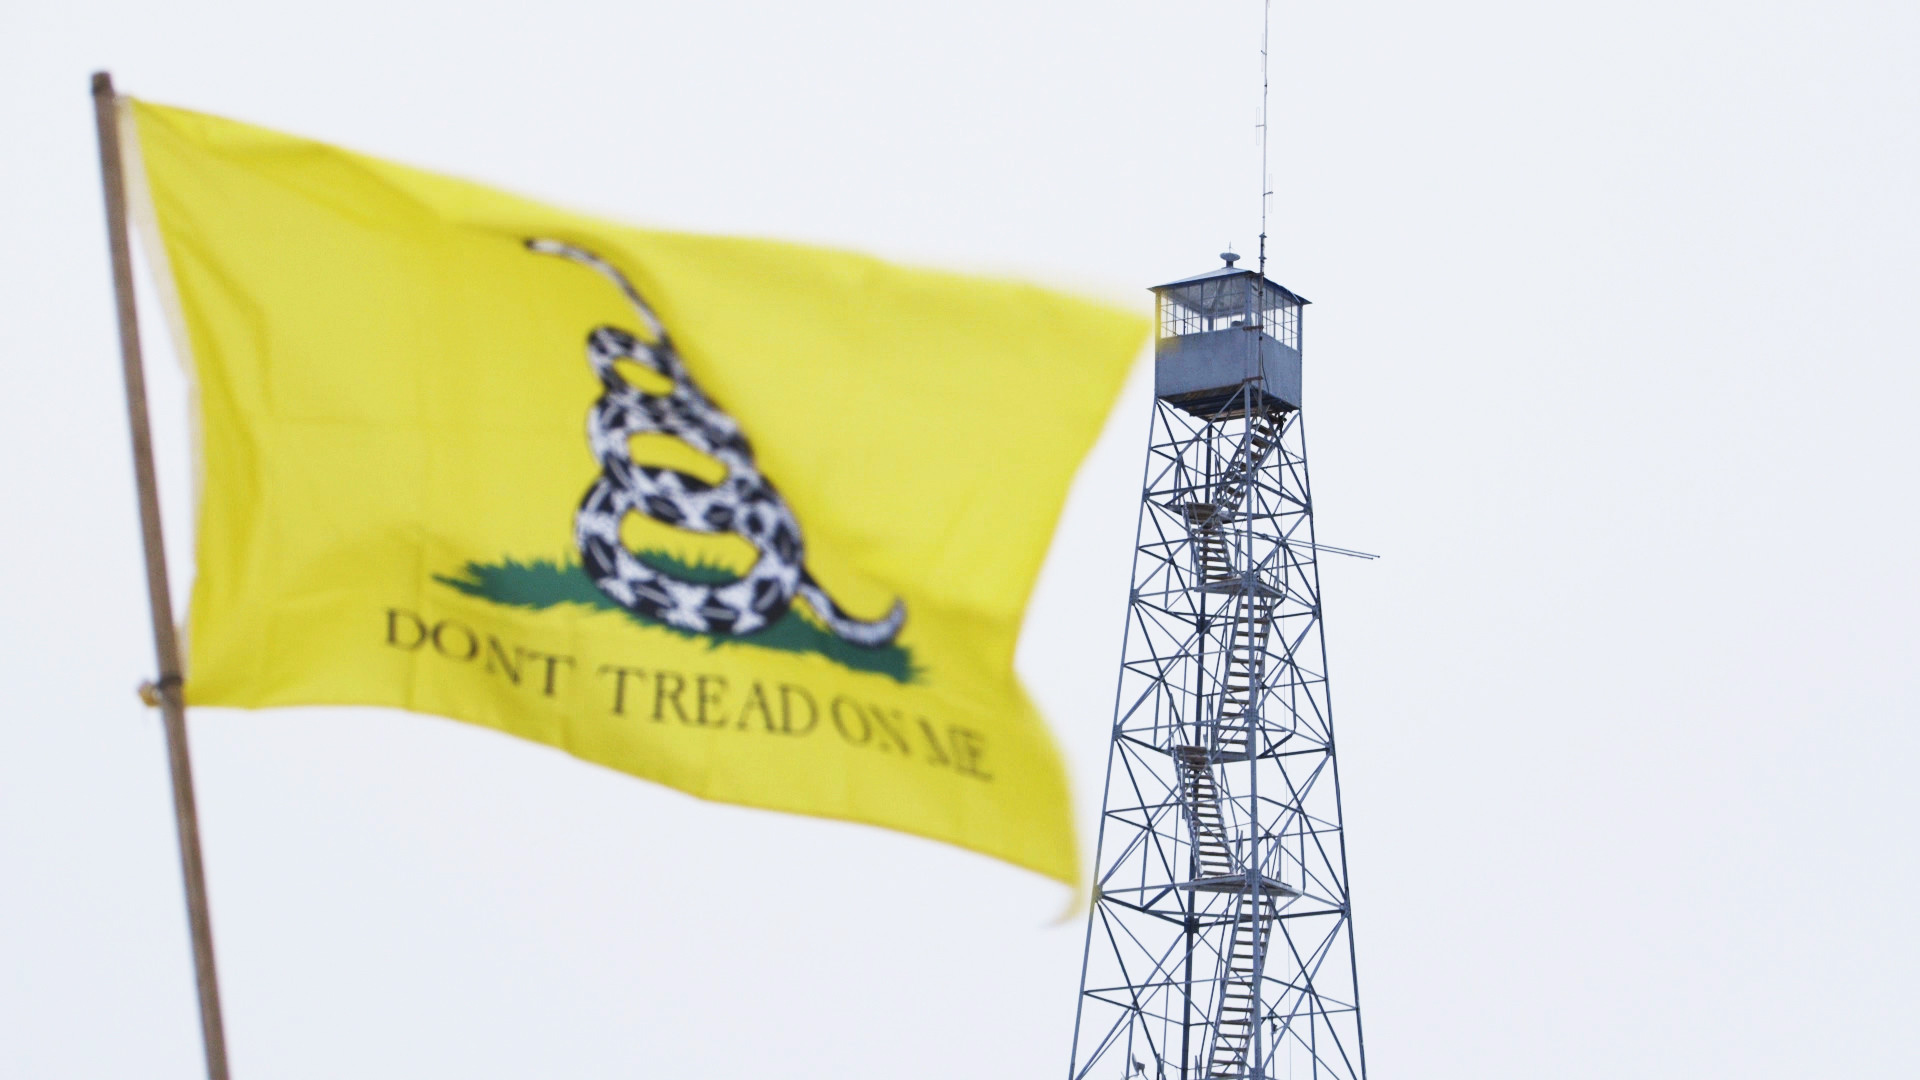 Don't Tread on Me flag in foreground, watch tower in background, from No Man's Land